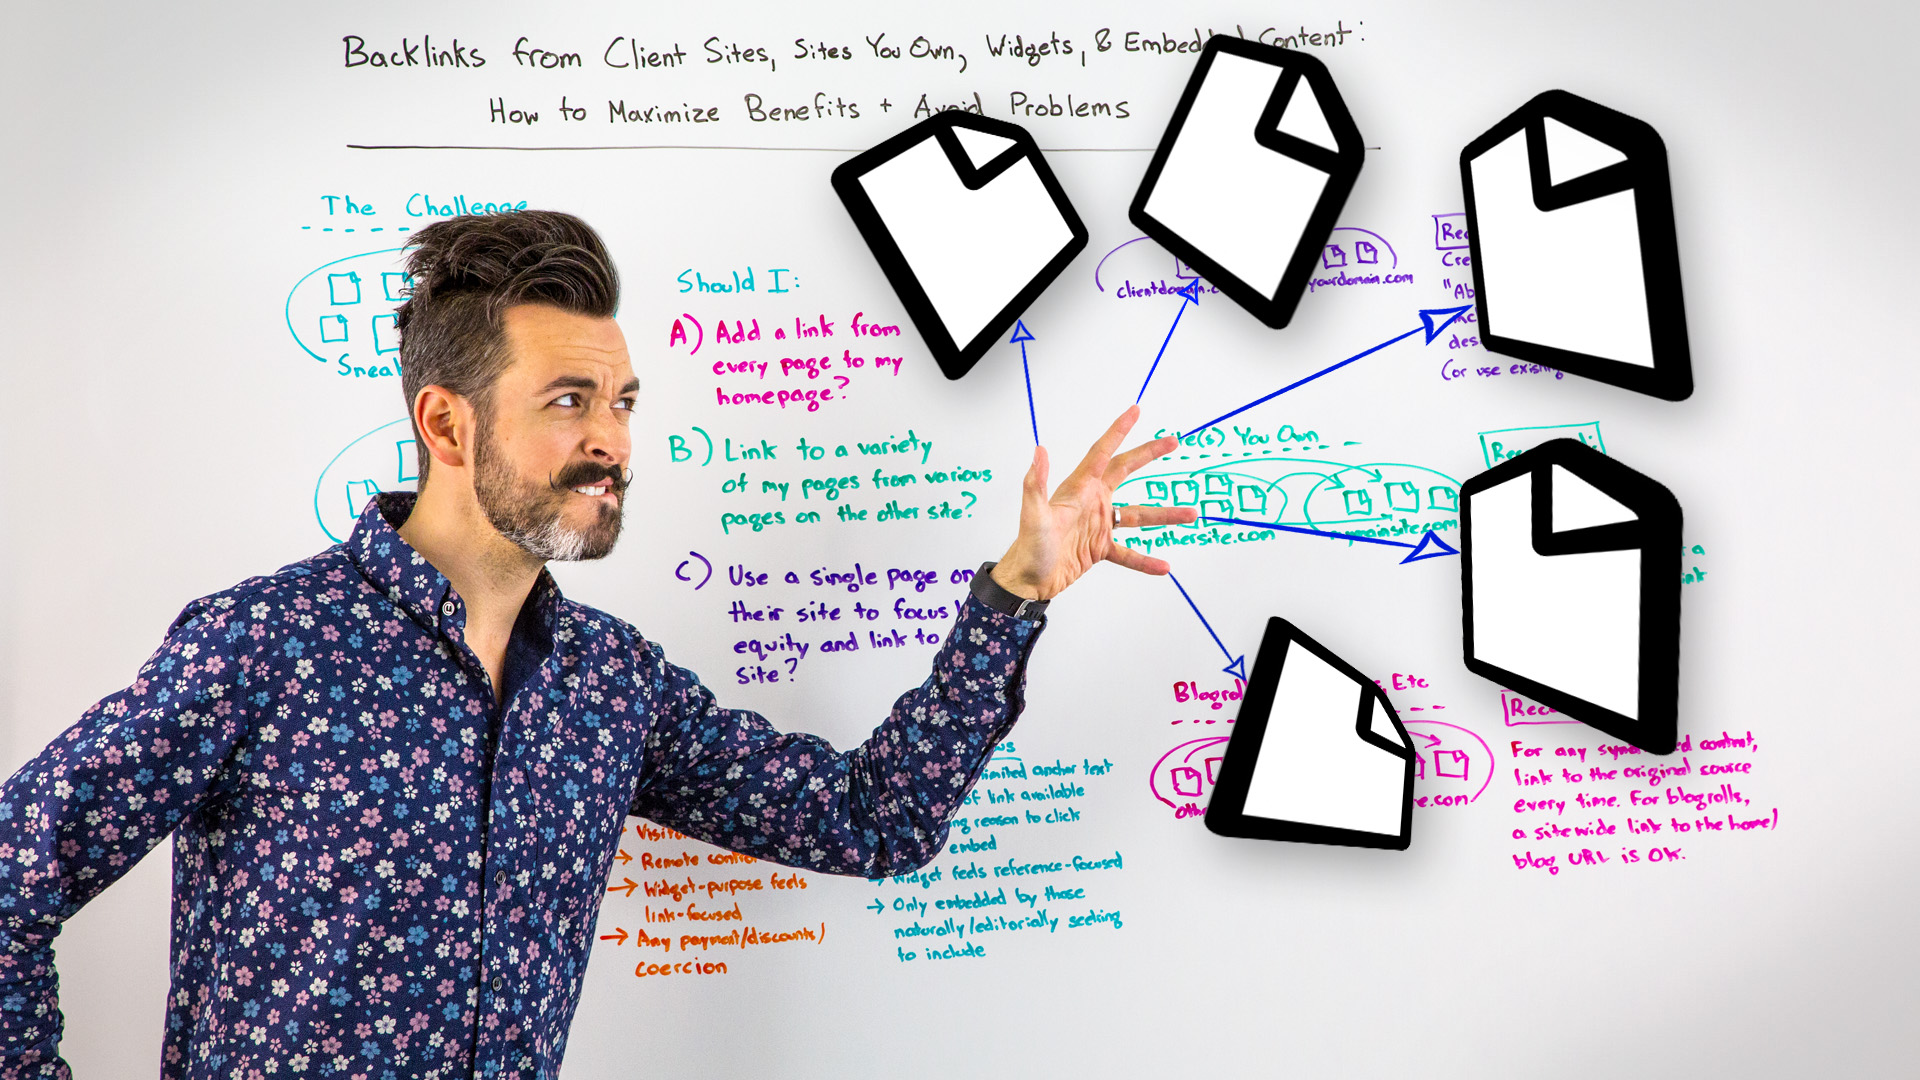 Backlinks From Client Sites, Sites You Own, Widgets